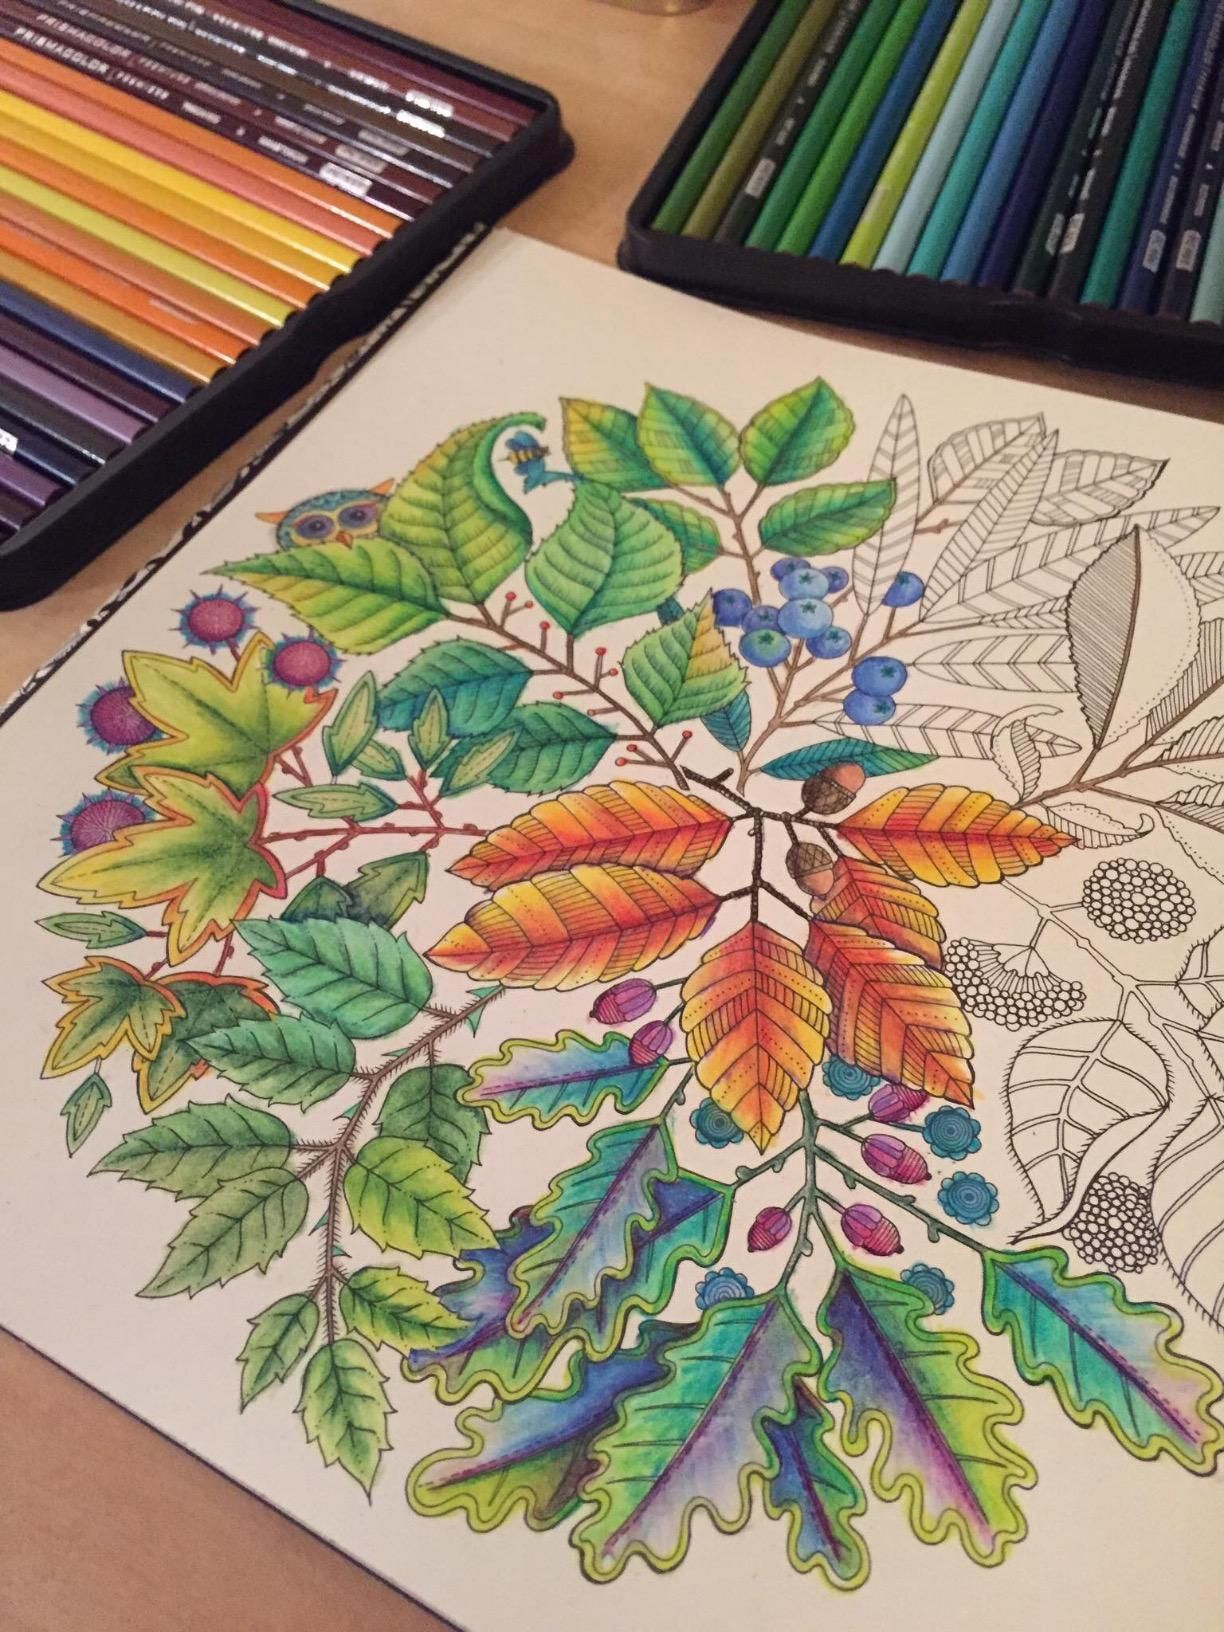 Secret Garden An Inky Treasure Hunt And Coloring Book Johanna Basford By J3nn1b34n On Sep 18 2015